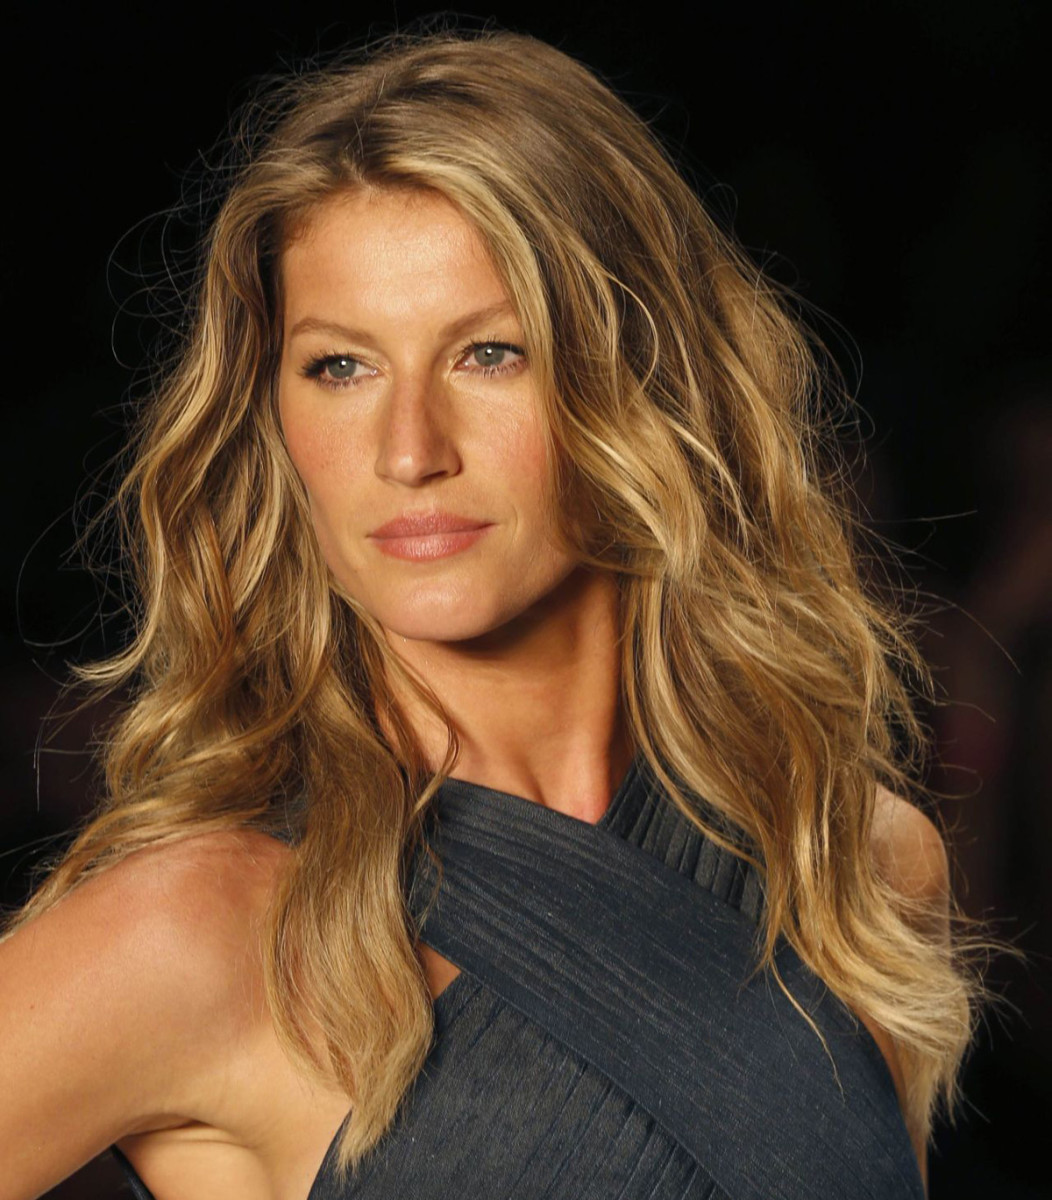 Gisele-like beachy waves are closer with the right extra-strength frizz-fighting regimen